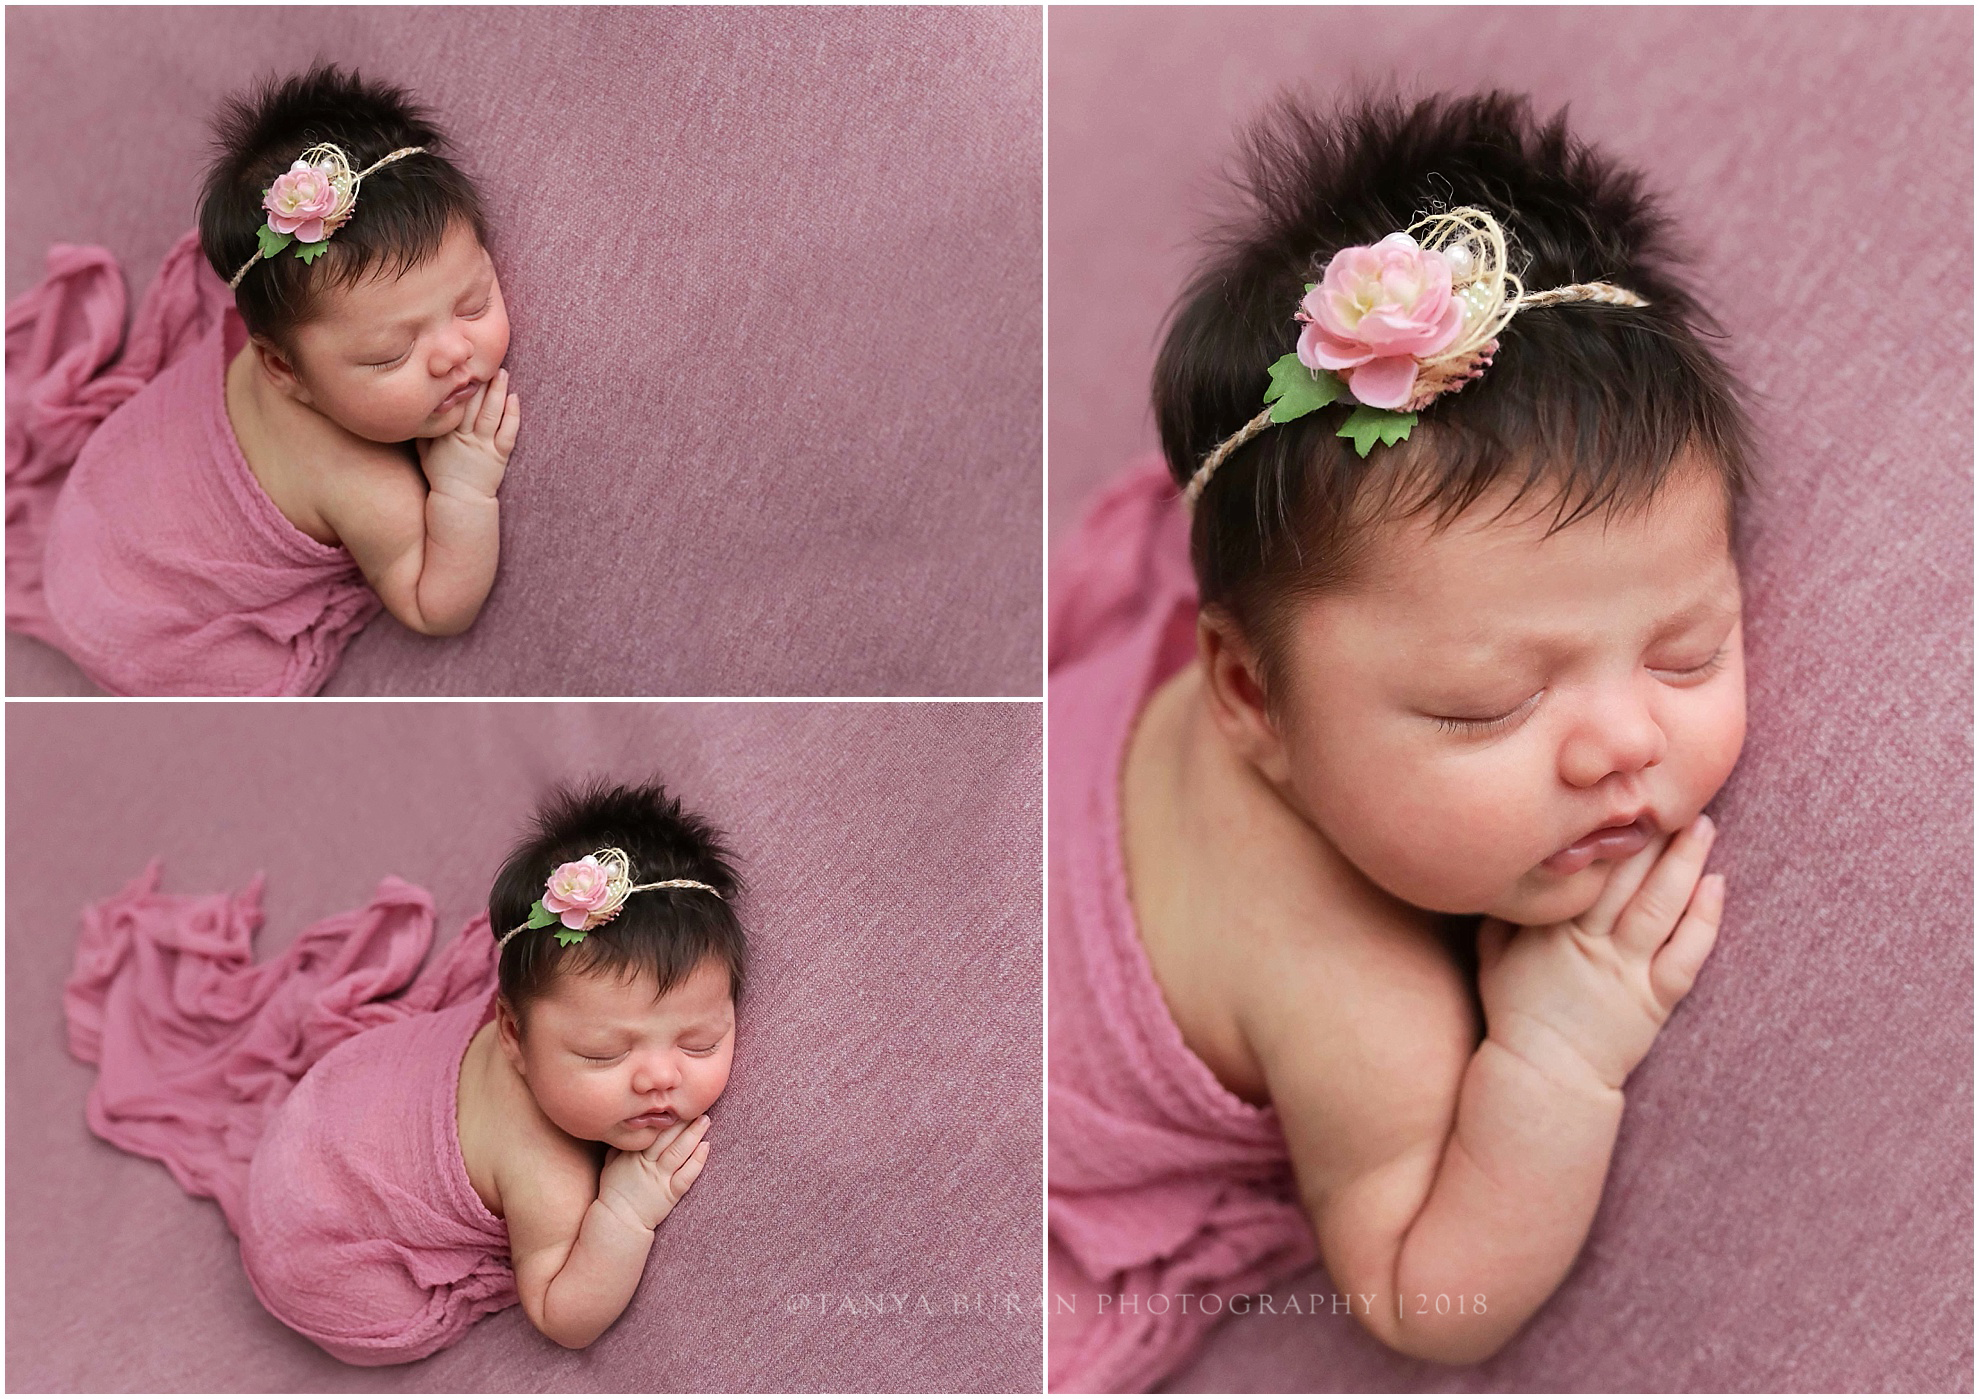 cd890bba4 If you are expecting a baby and would like to book a newborn session with  me please contact me HERE.